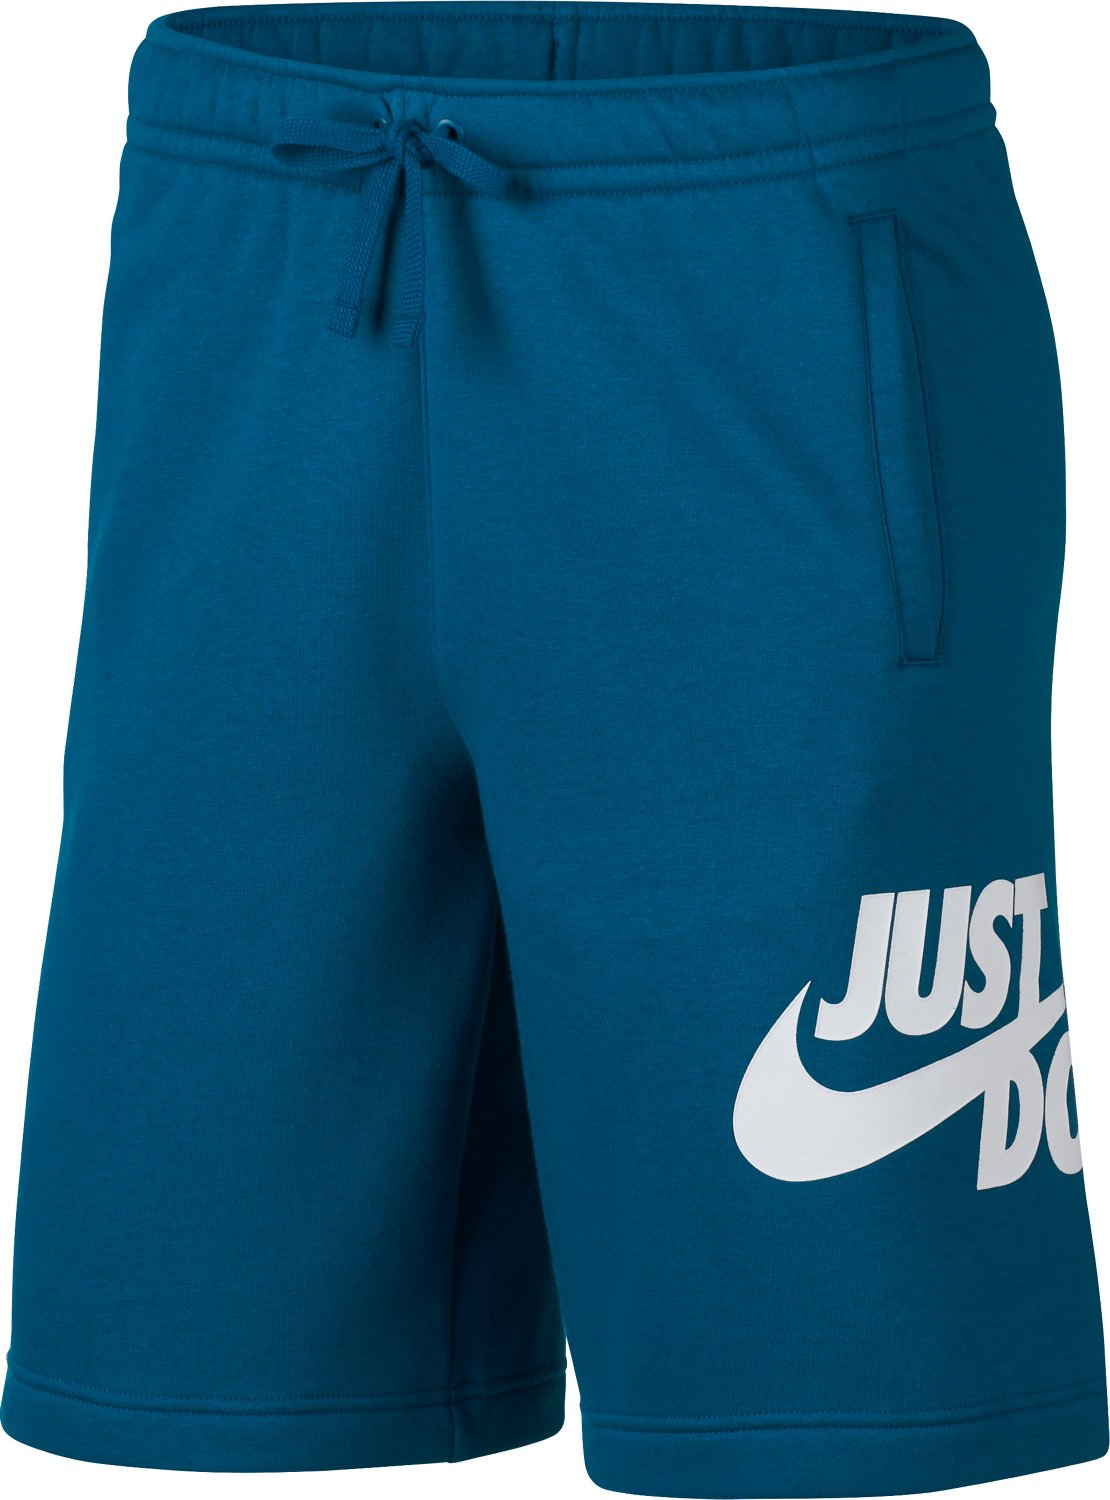 Display product reviews for Nike Men's Sportswear Just Do It Shorts